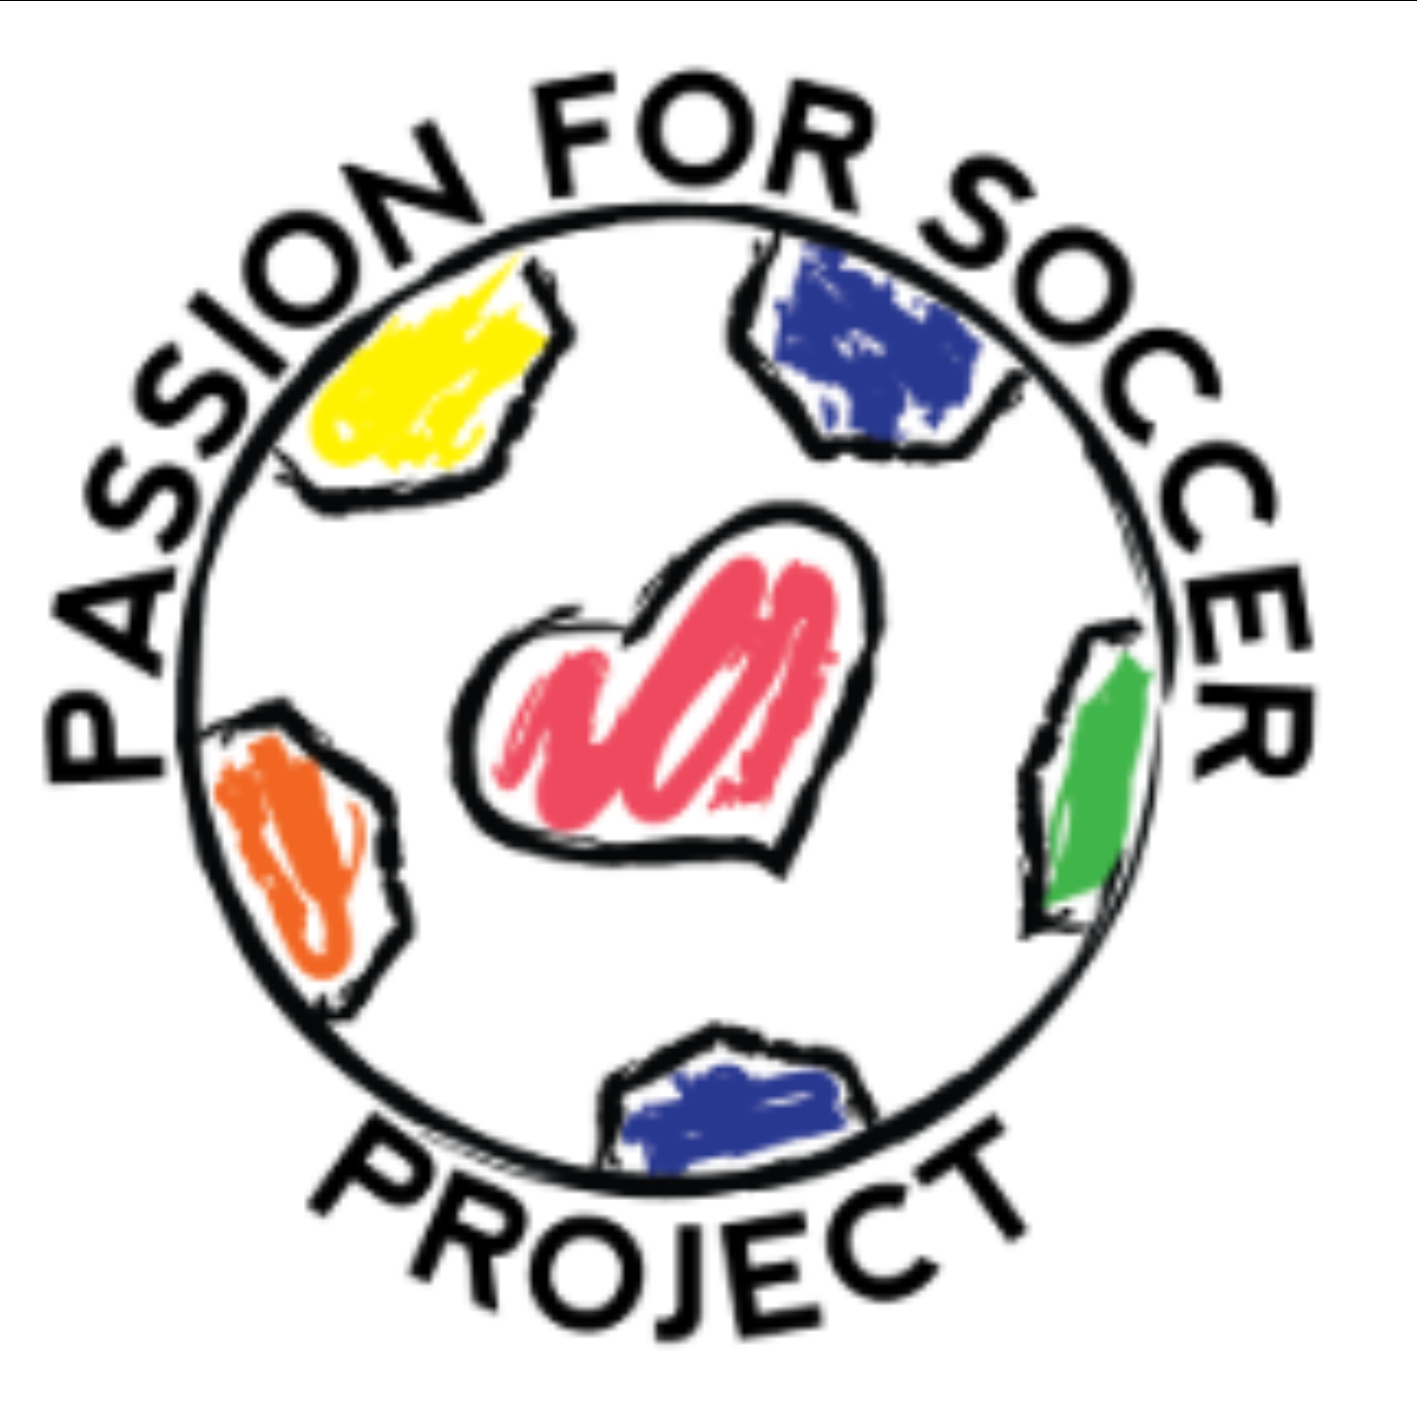 Passion For Soccer Project